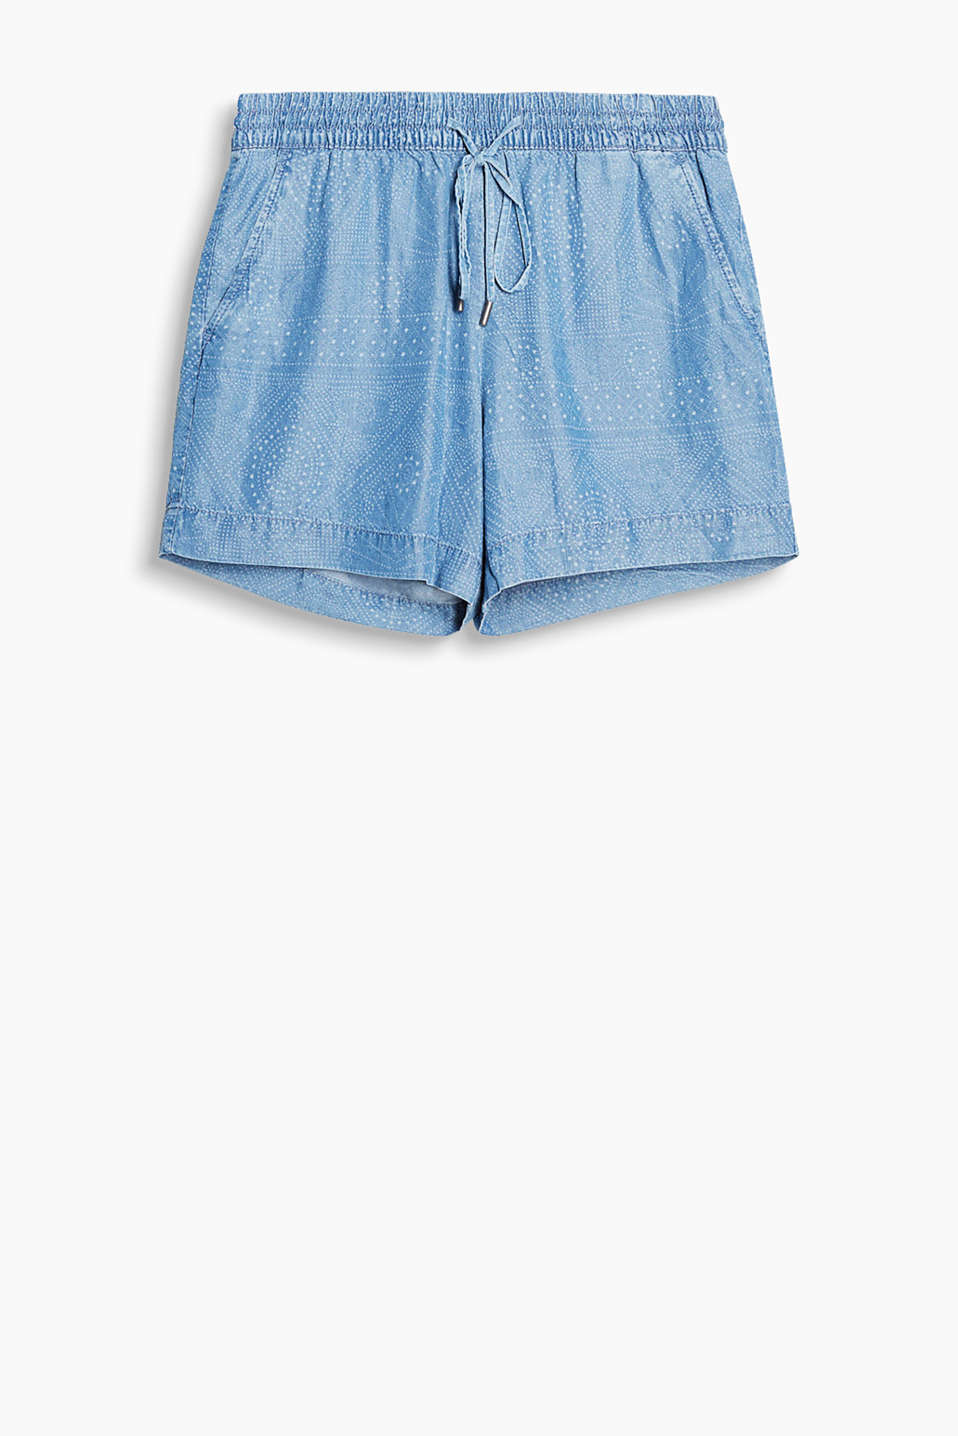 Weiche, fließende Sommer-Shorts in Denim-Optik mit Gummibund